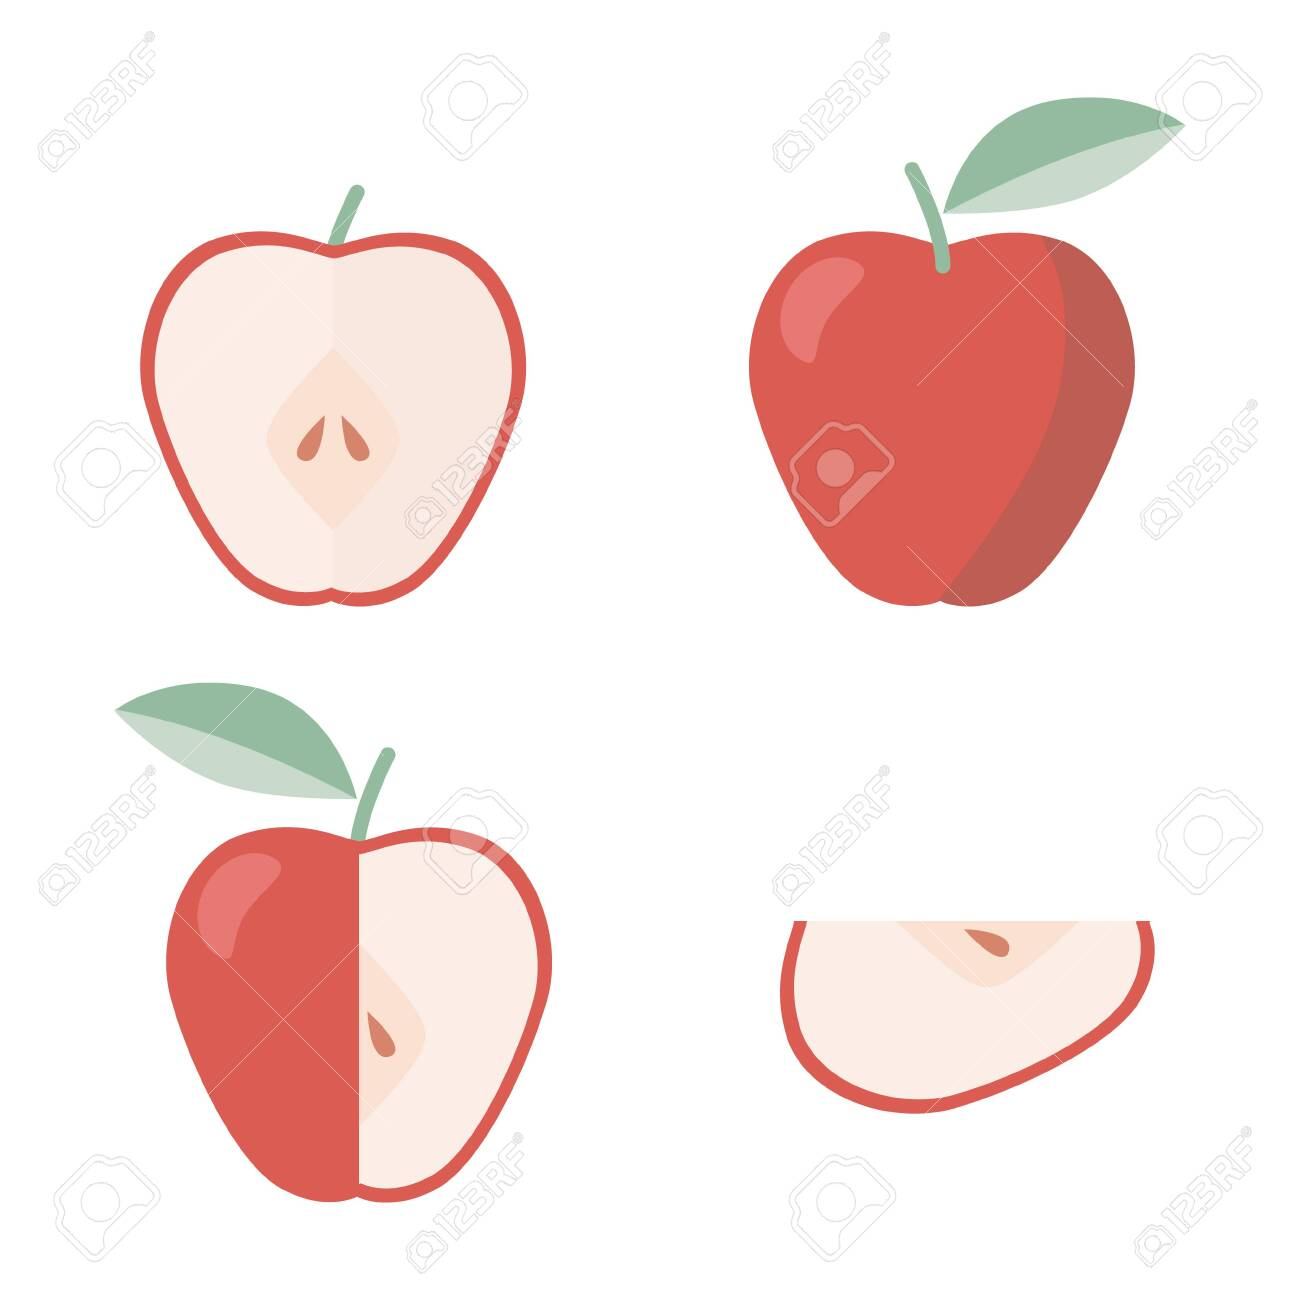 Icons set of apple in flat style, for print. - 131932760